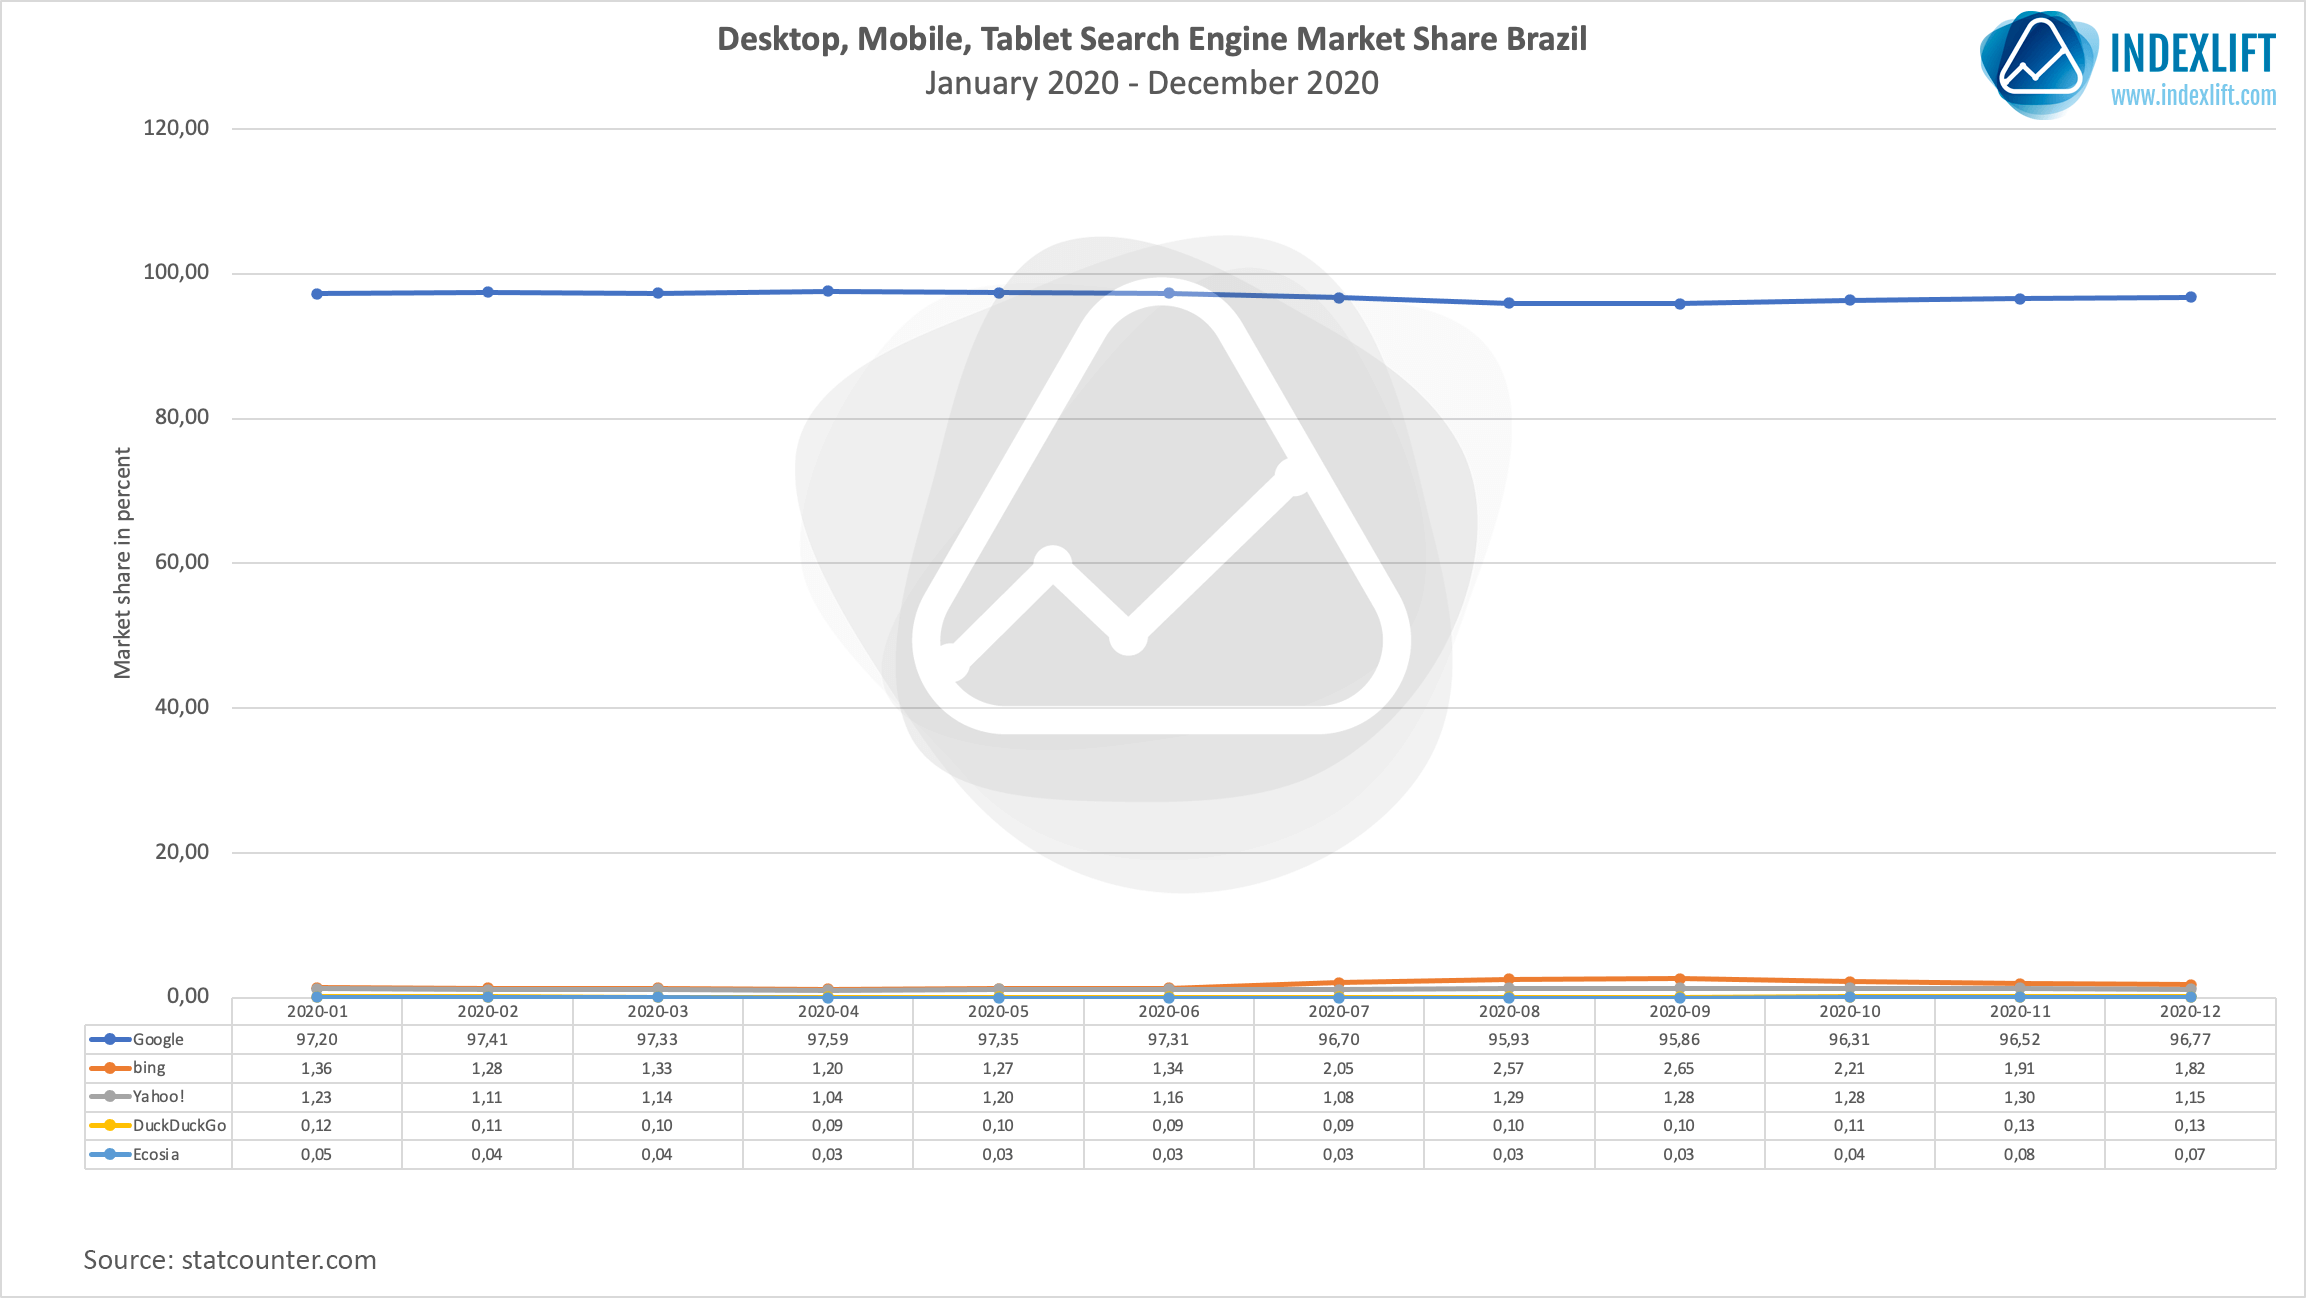 Search Engine Market Share Brazil 2020